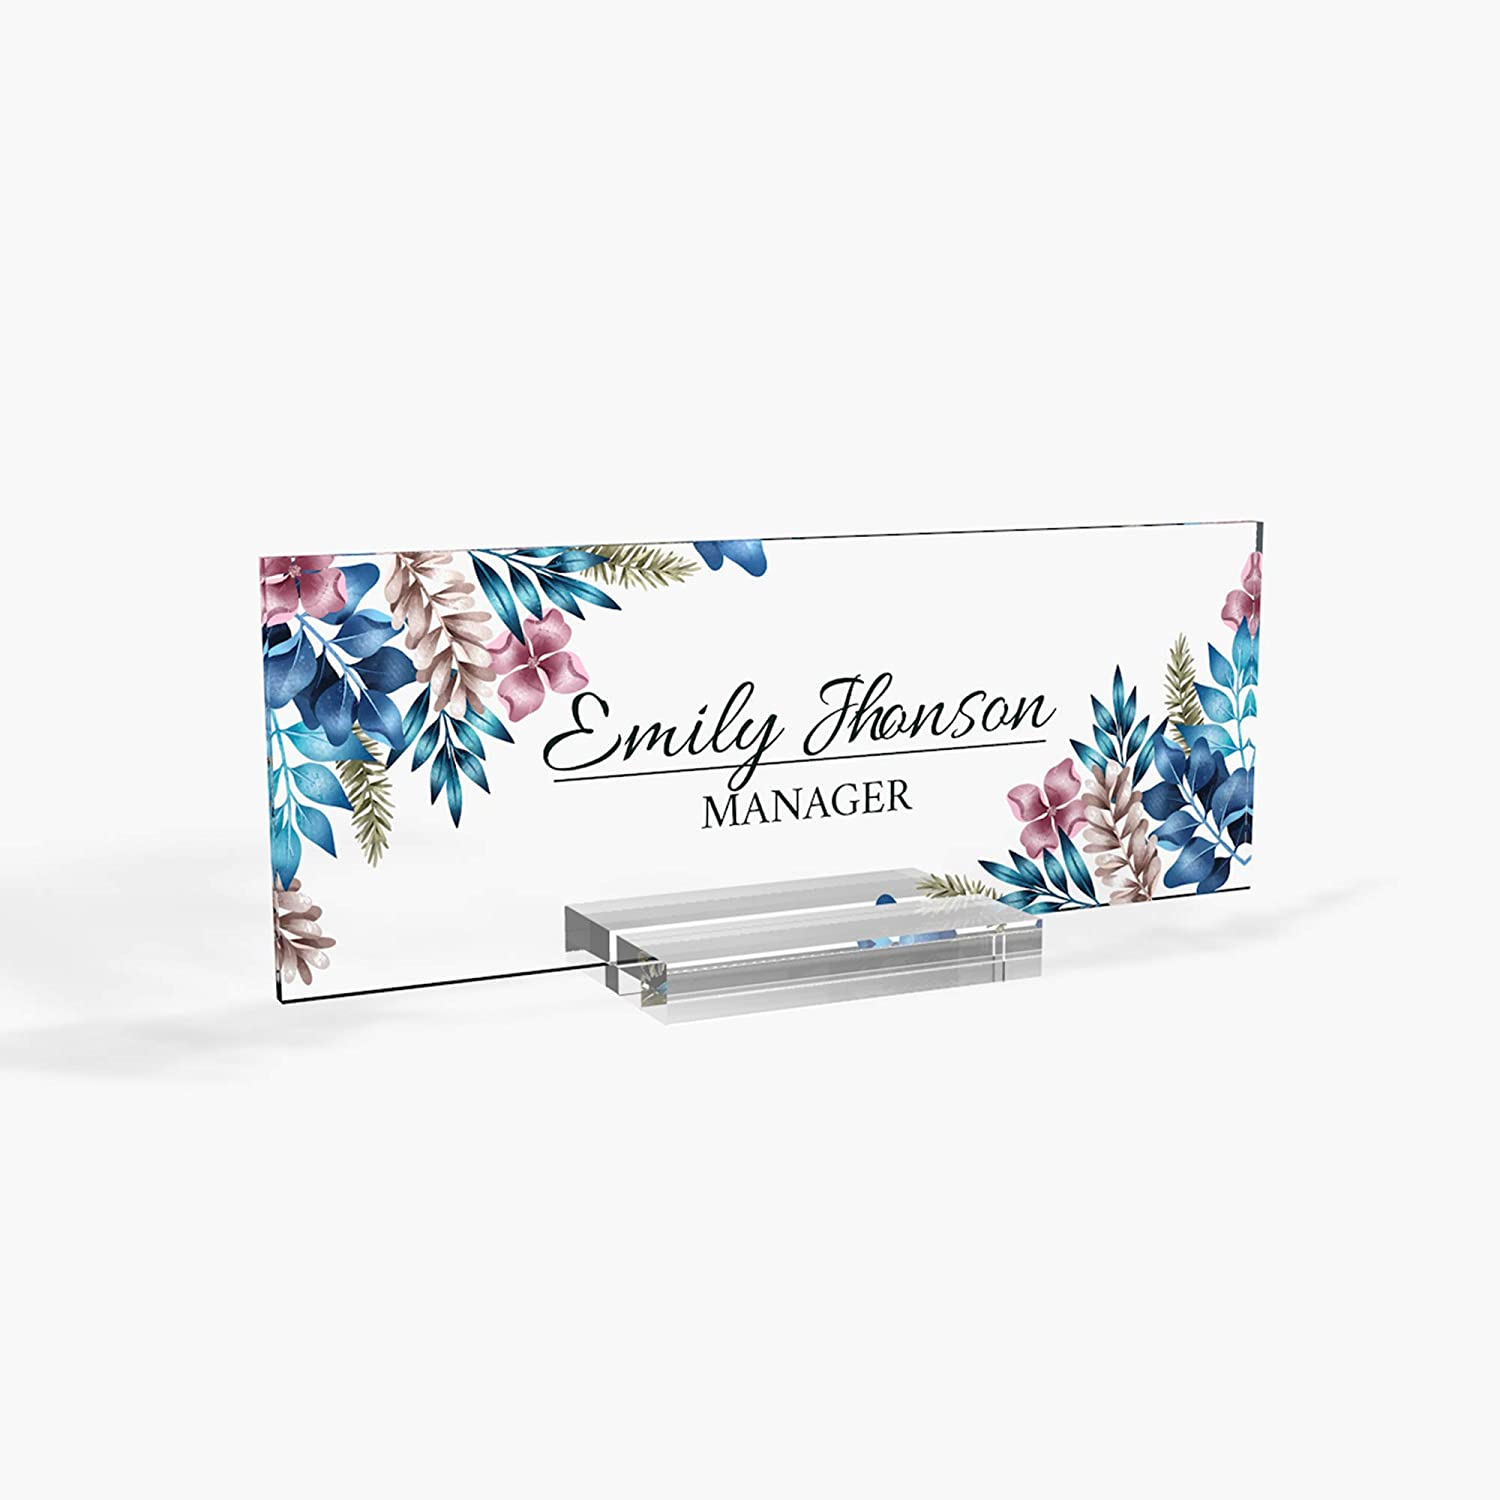 Personalized Desk Name Plate for Office Sign Modern Office Women Decor Home Desk Name Plate Teacher Desk Name Sign Holder Blue Galaxy Rose - (8